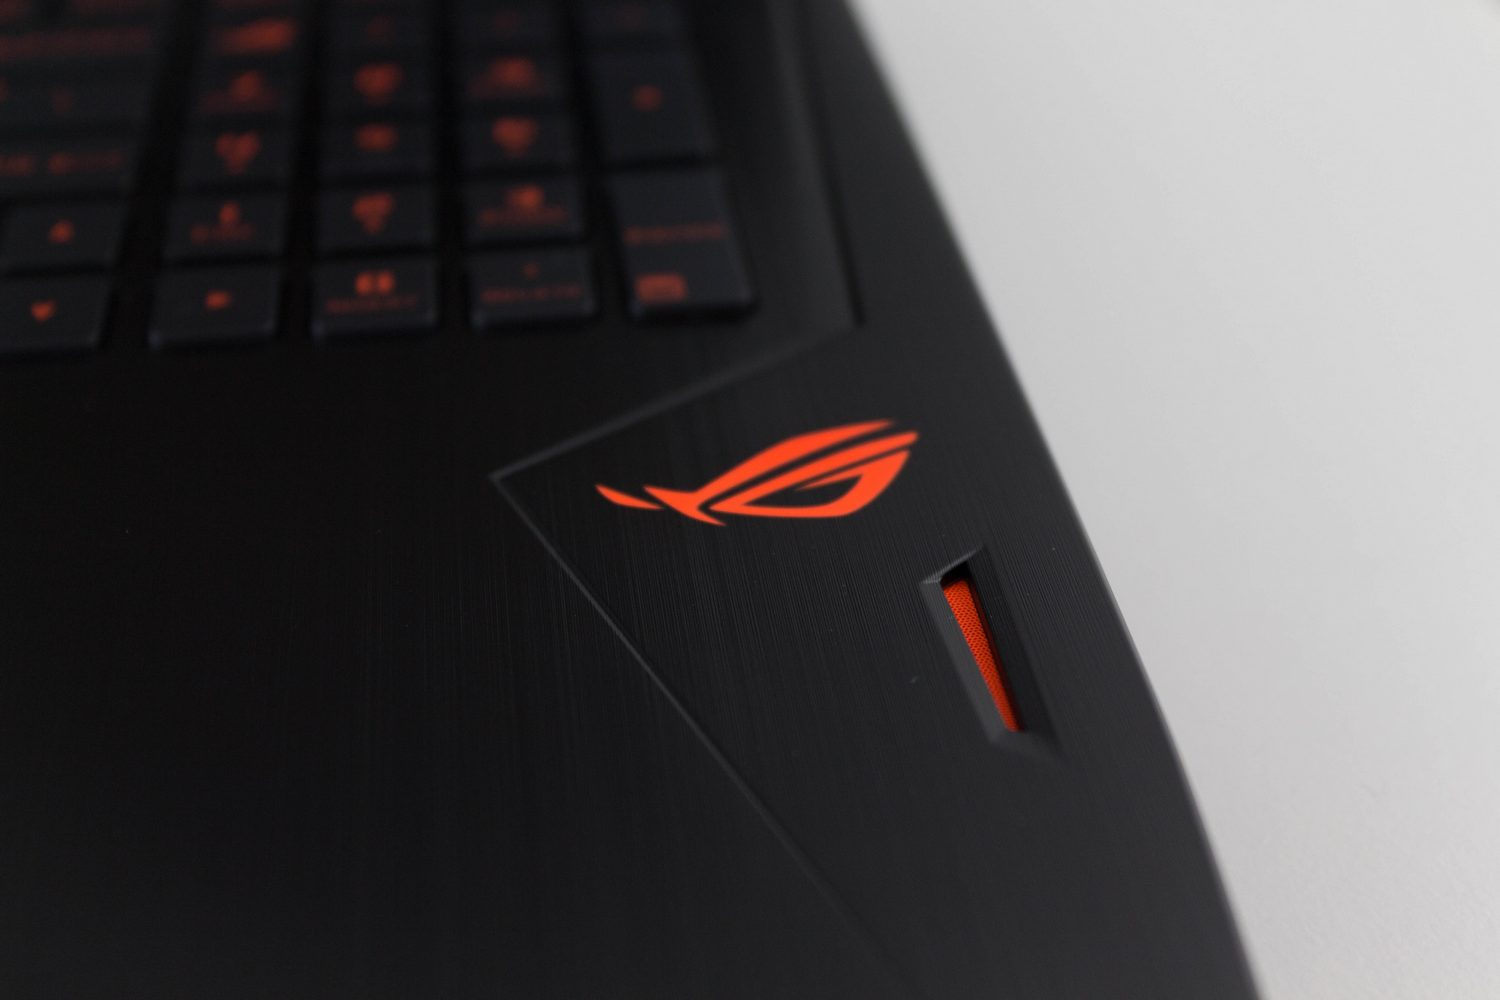 Wireless, Audio, Thermals, and Software - The ASUS ROG Strix GL502VS